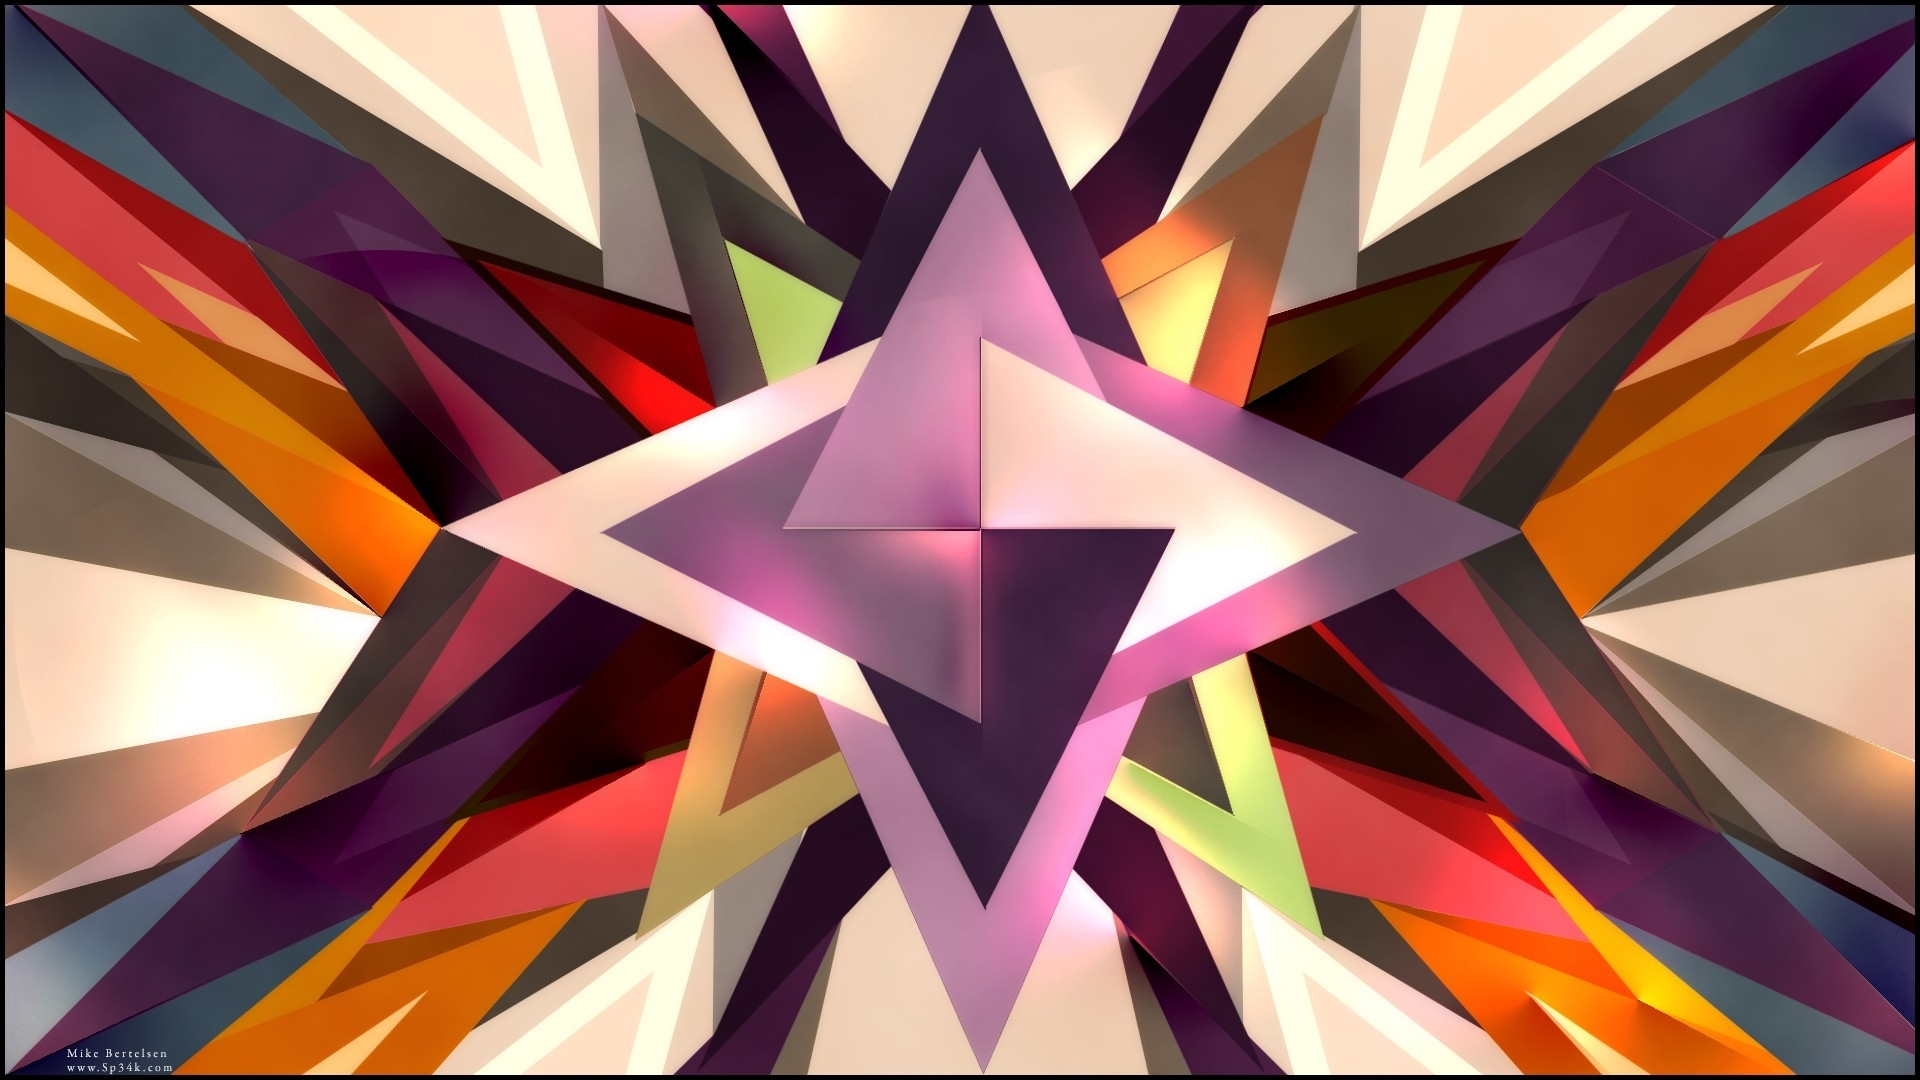 triangle abstract wallpapers hd - photo #39